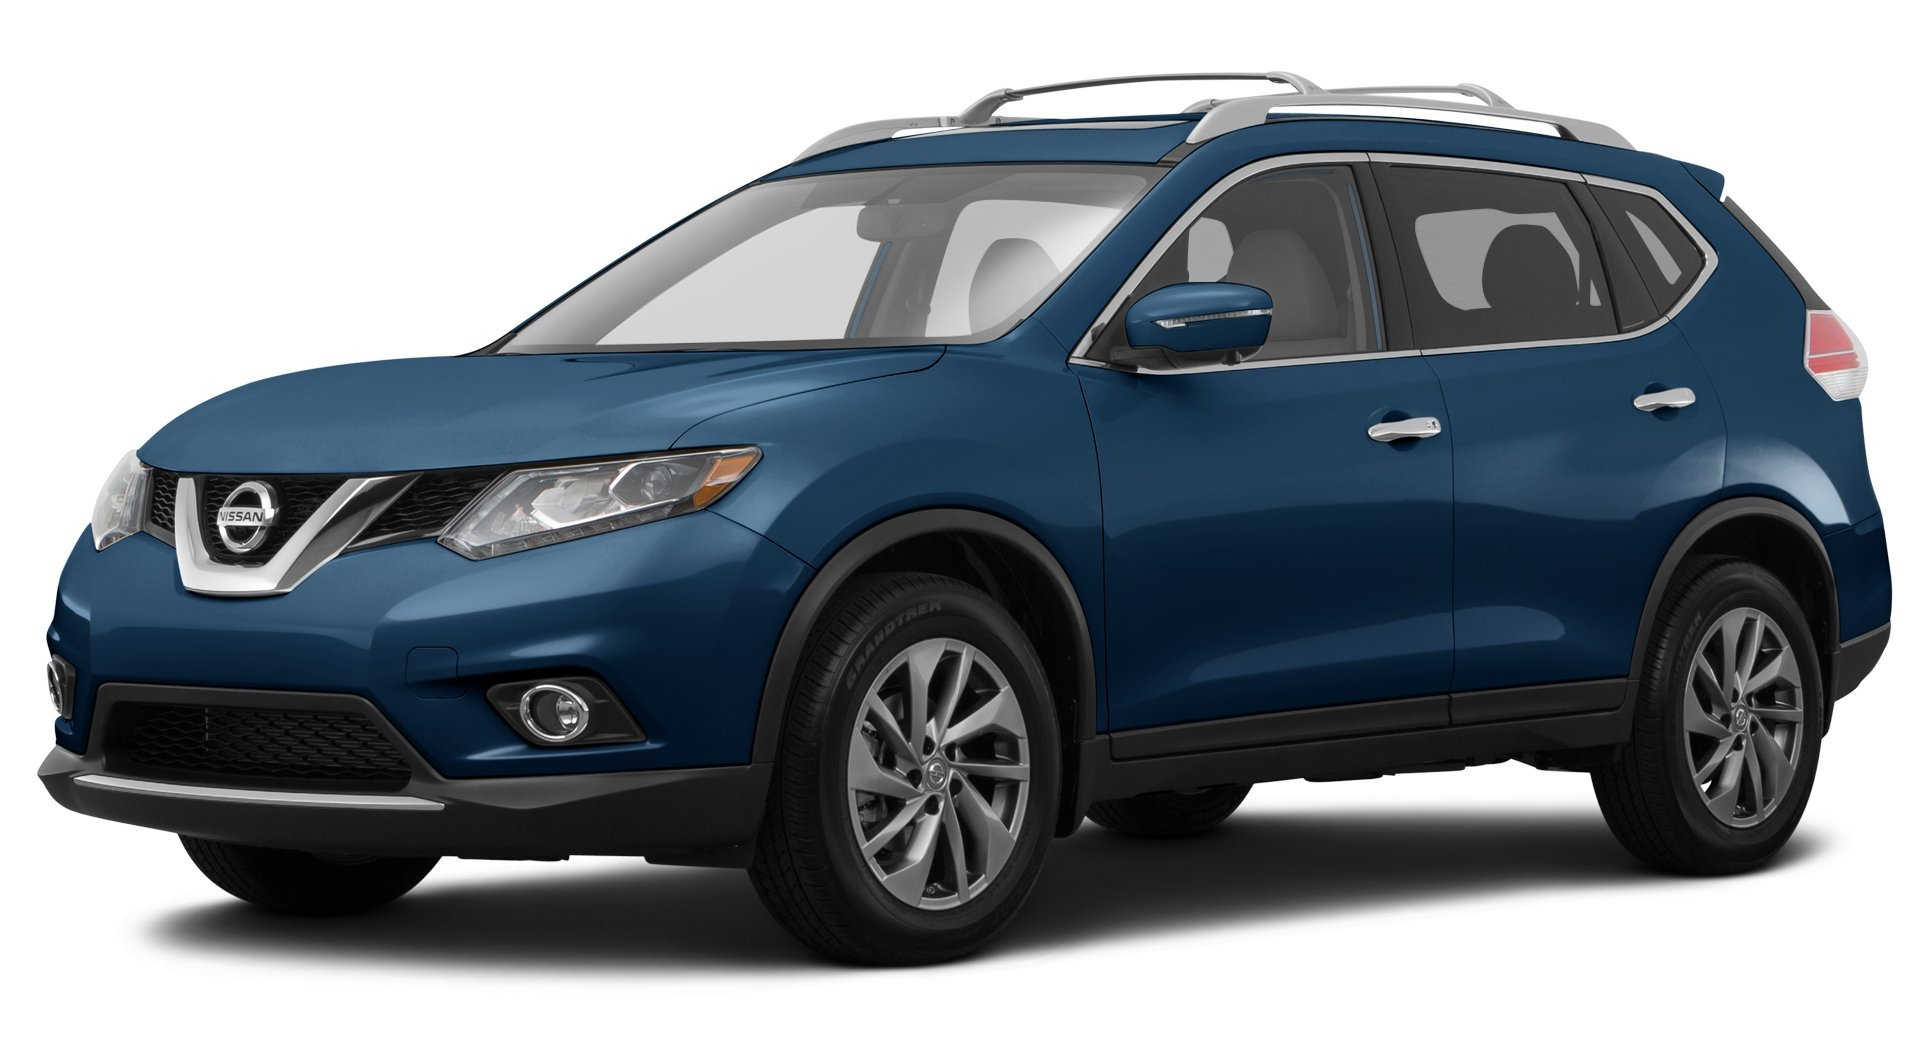 2015 nissan rogue reviews images and specs vehicles. Black Bedroom Furniture Sets. Home Design Ideas